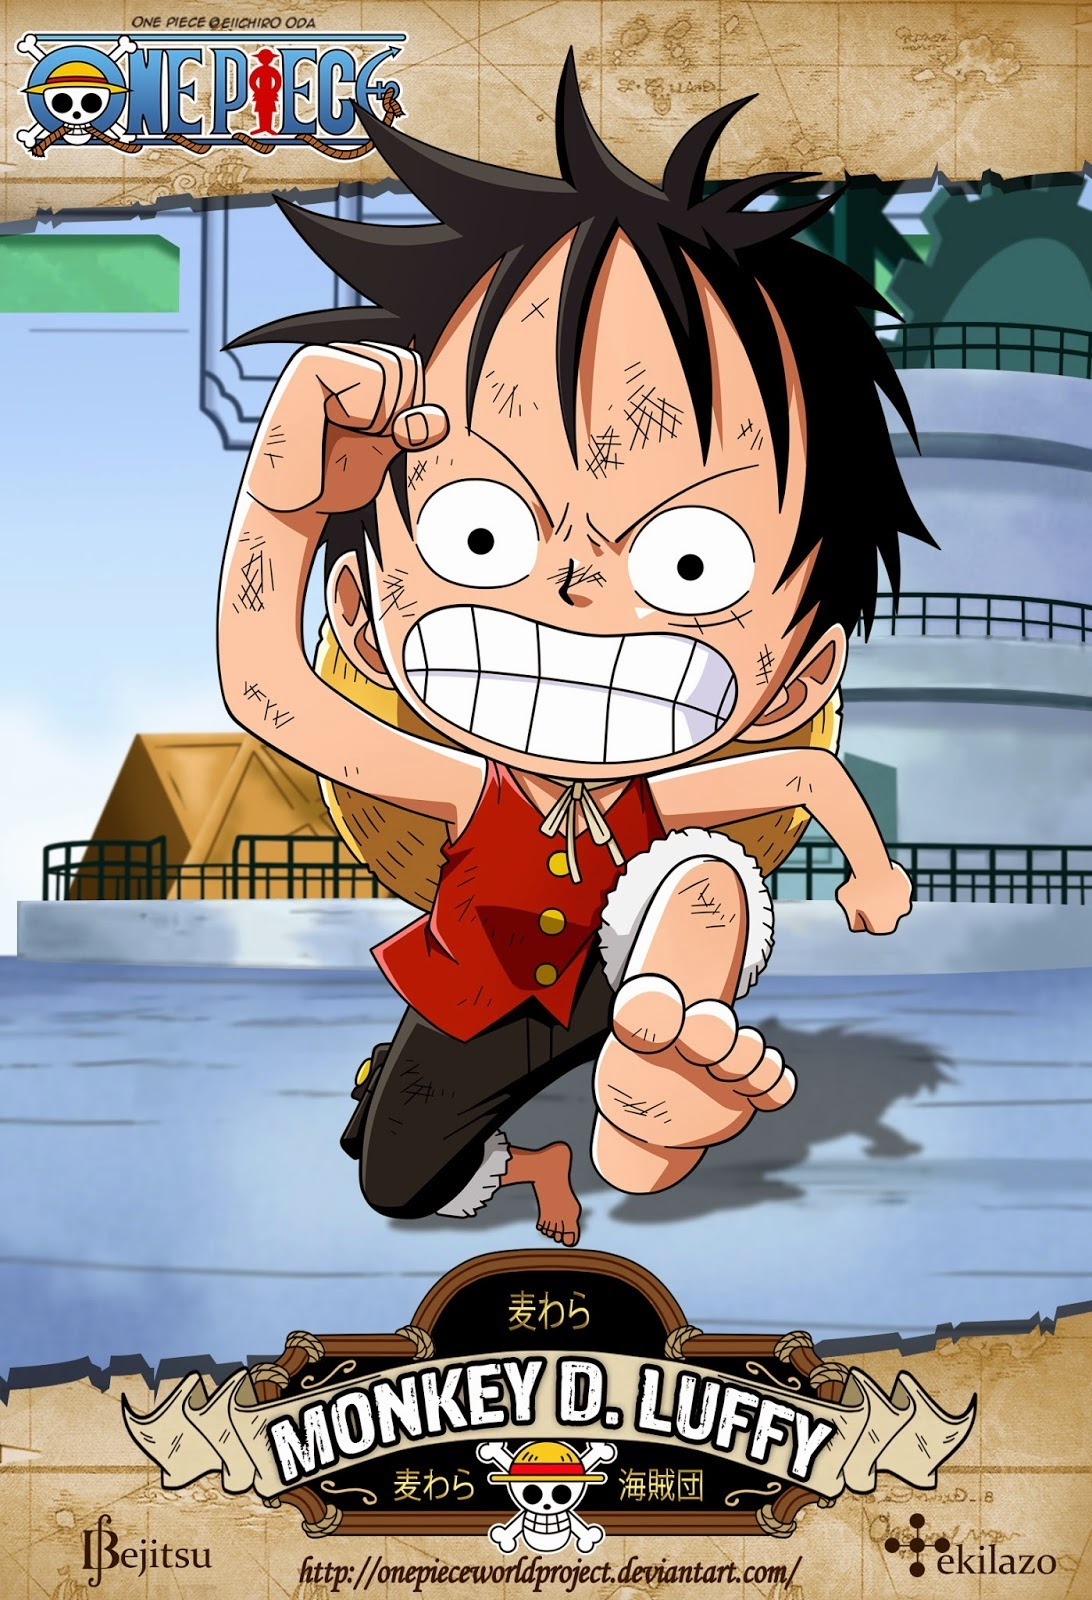 Wallpaper iphone one piece - One Piece Wallpaper High Quality